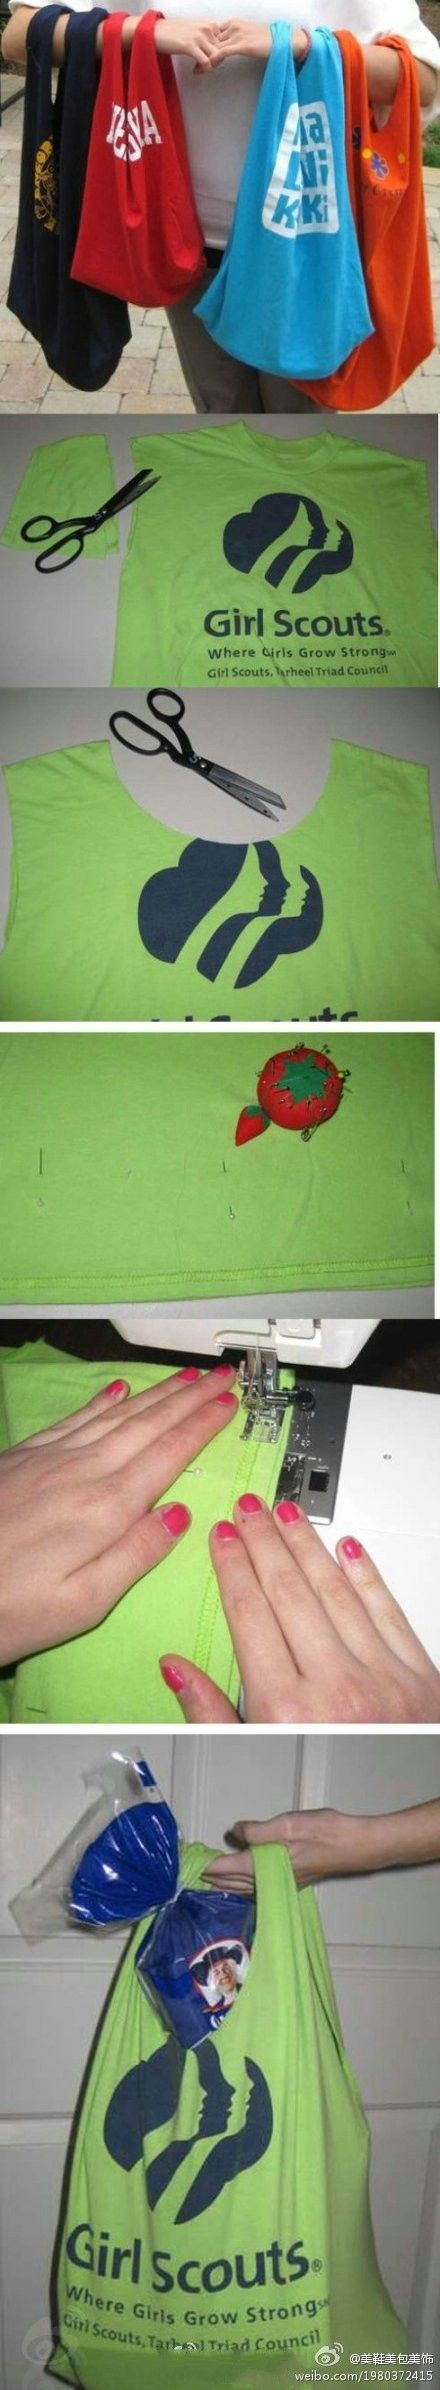 Repurpose old t-shirts by making reusable bags from them.